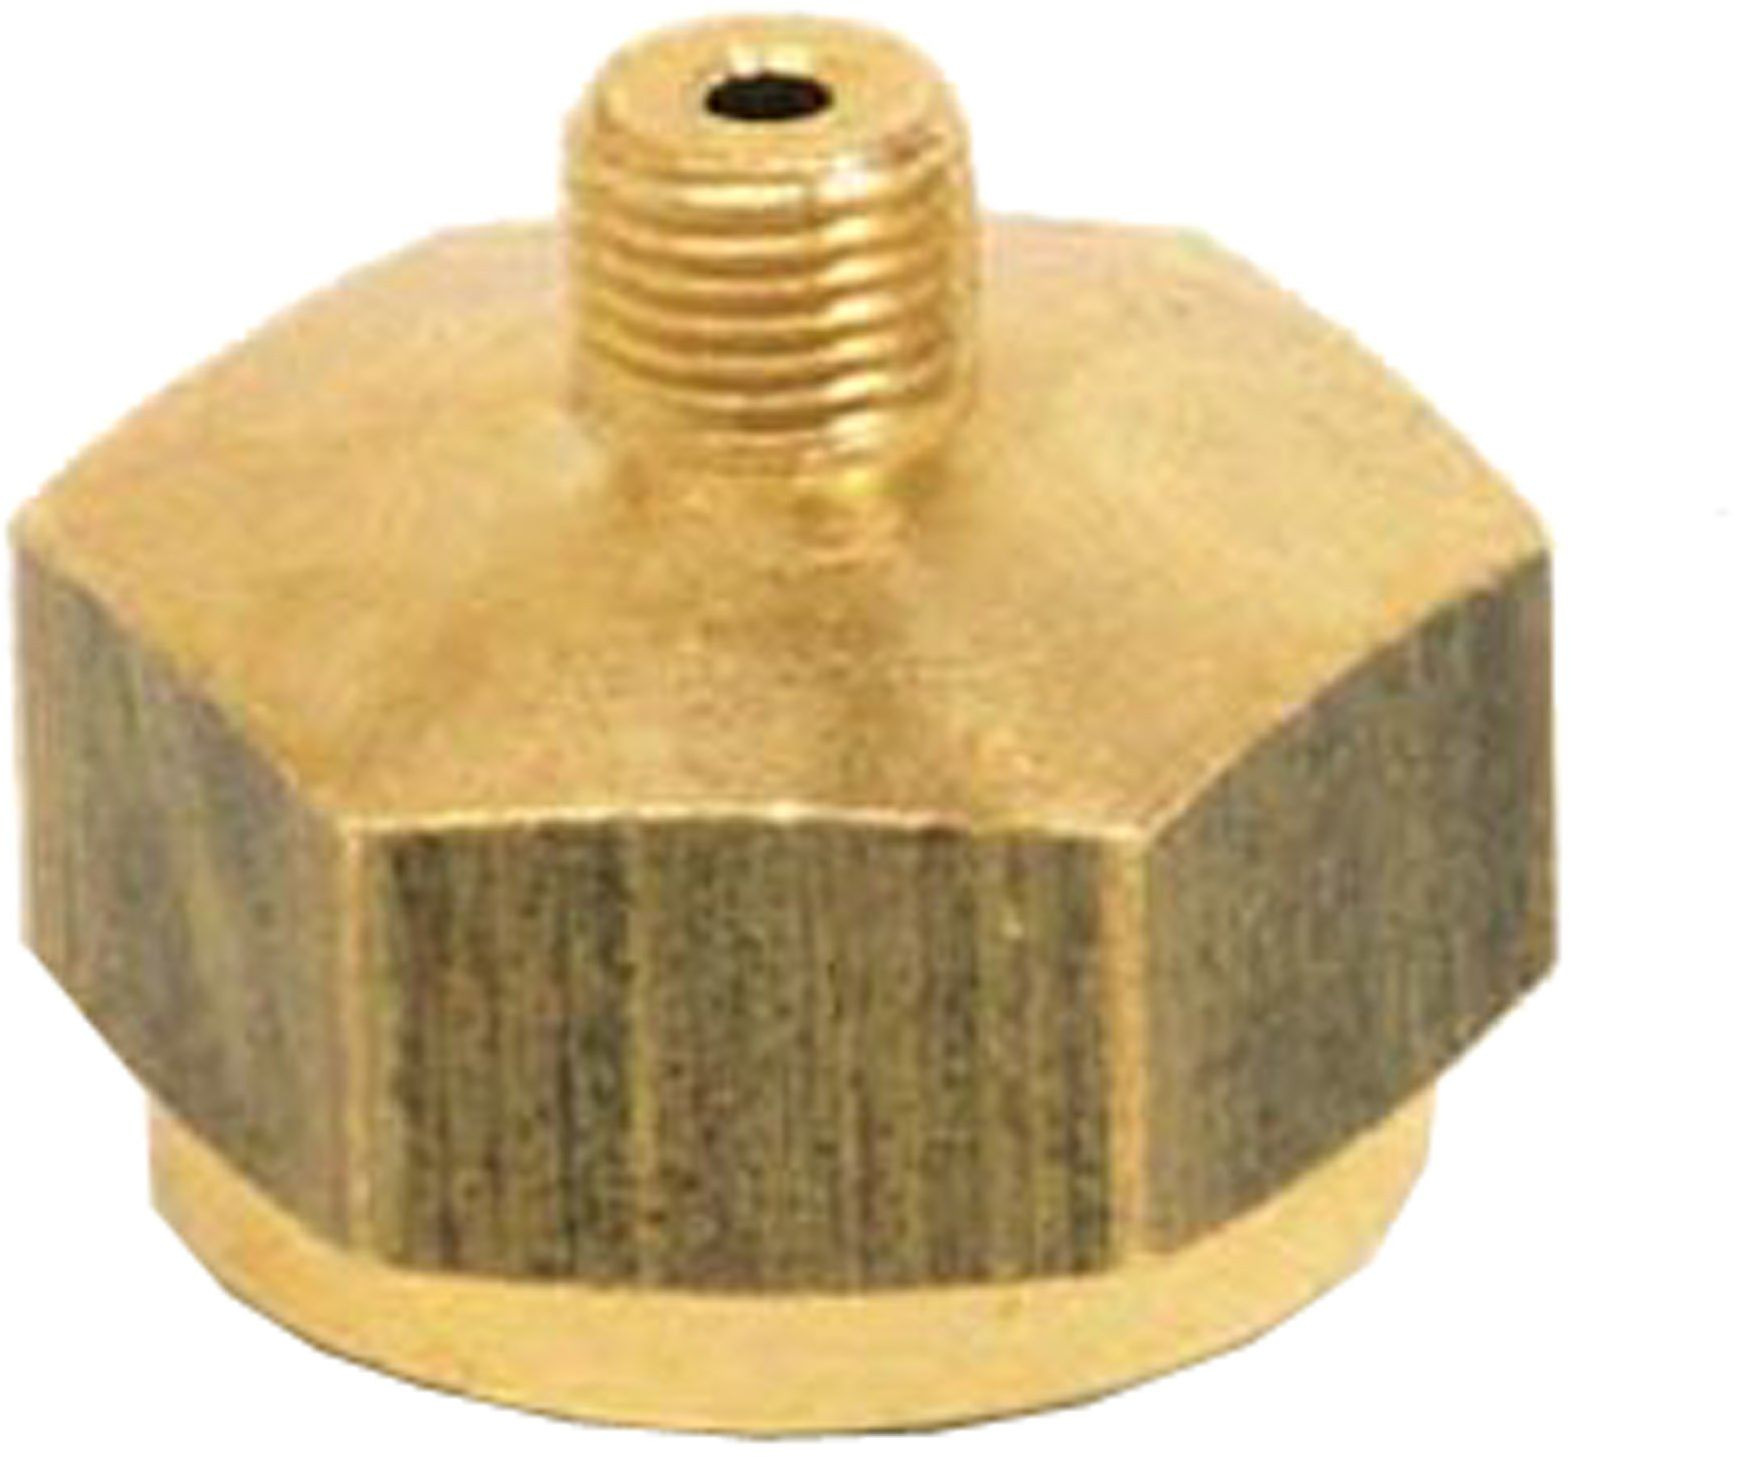 "Revell 38240 adapter do kompresora 1/4"", wielokolorowy"